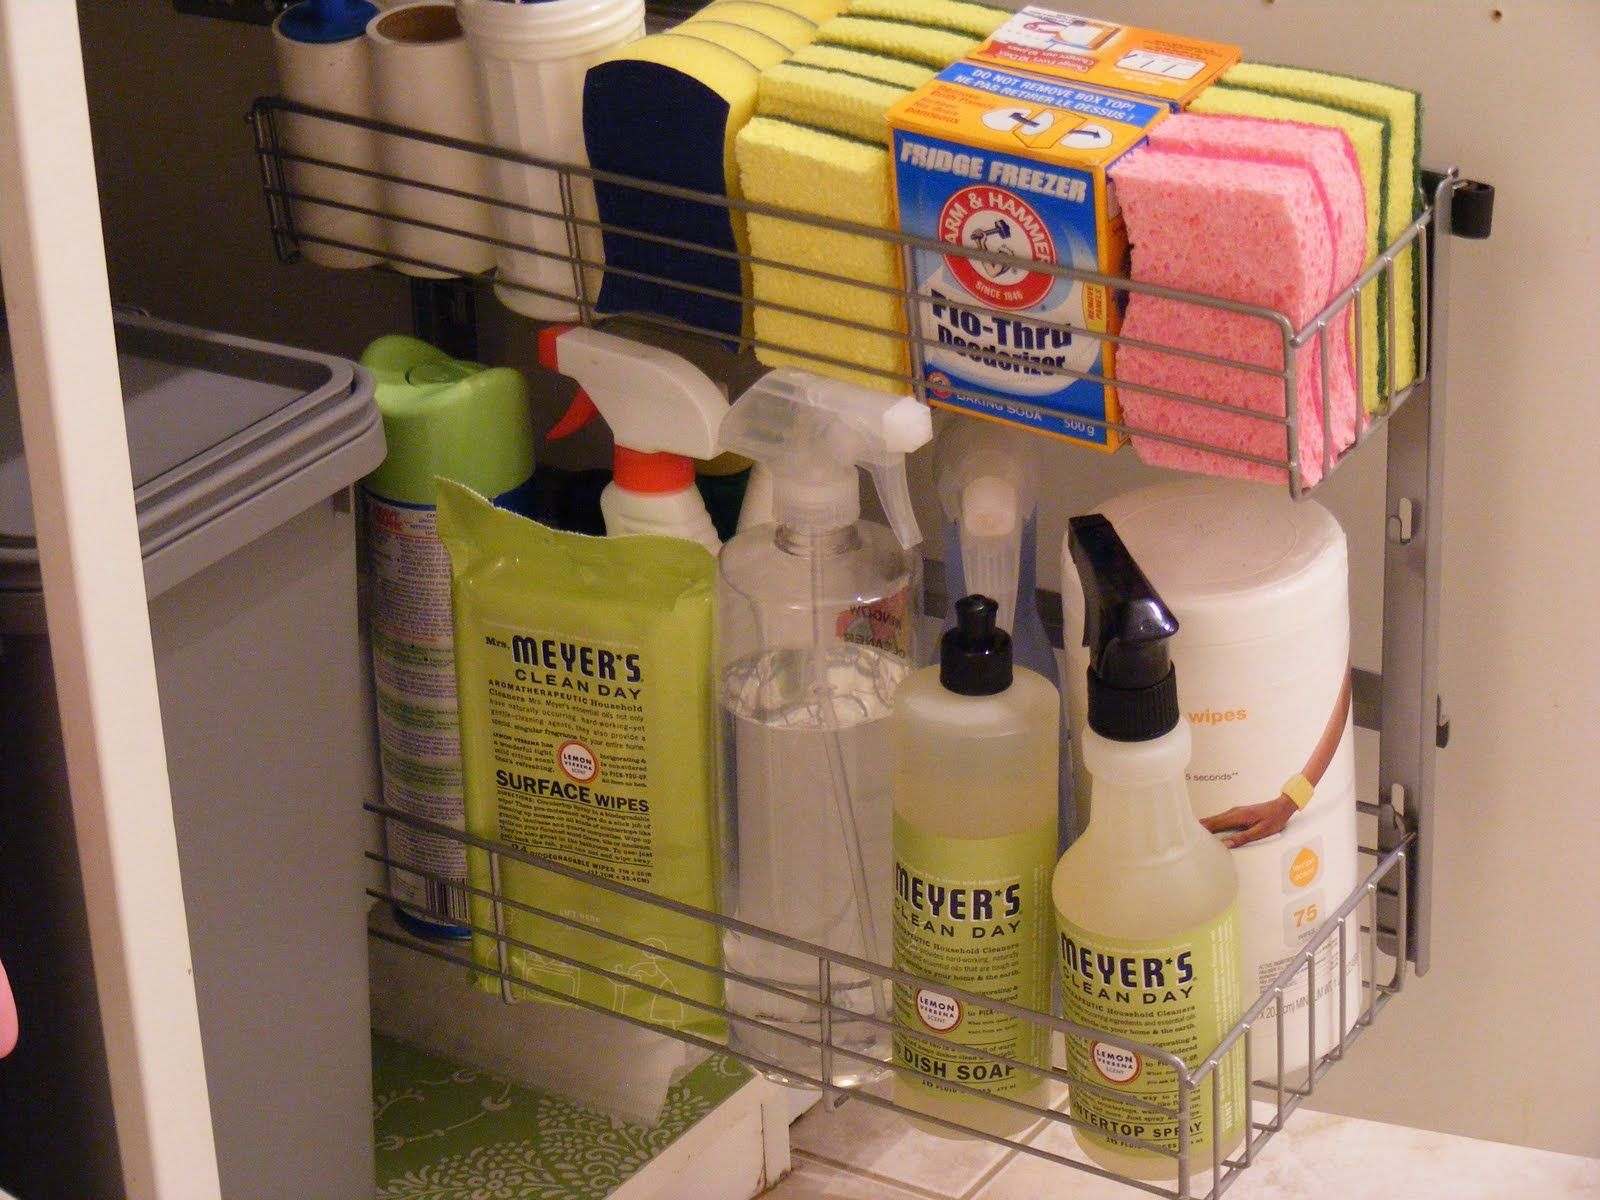 Kitchen Organization Wire Shelving Under Sink Unit From Ikea39s Rationell Line Mini Manor Blog